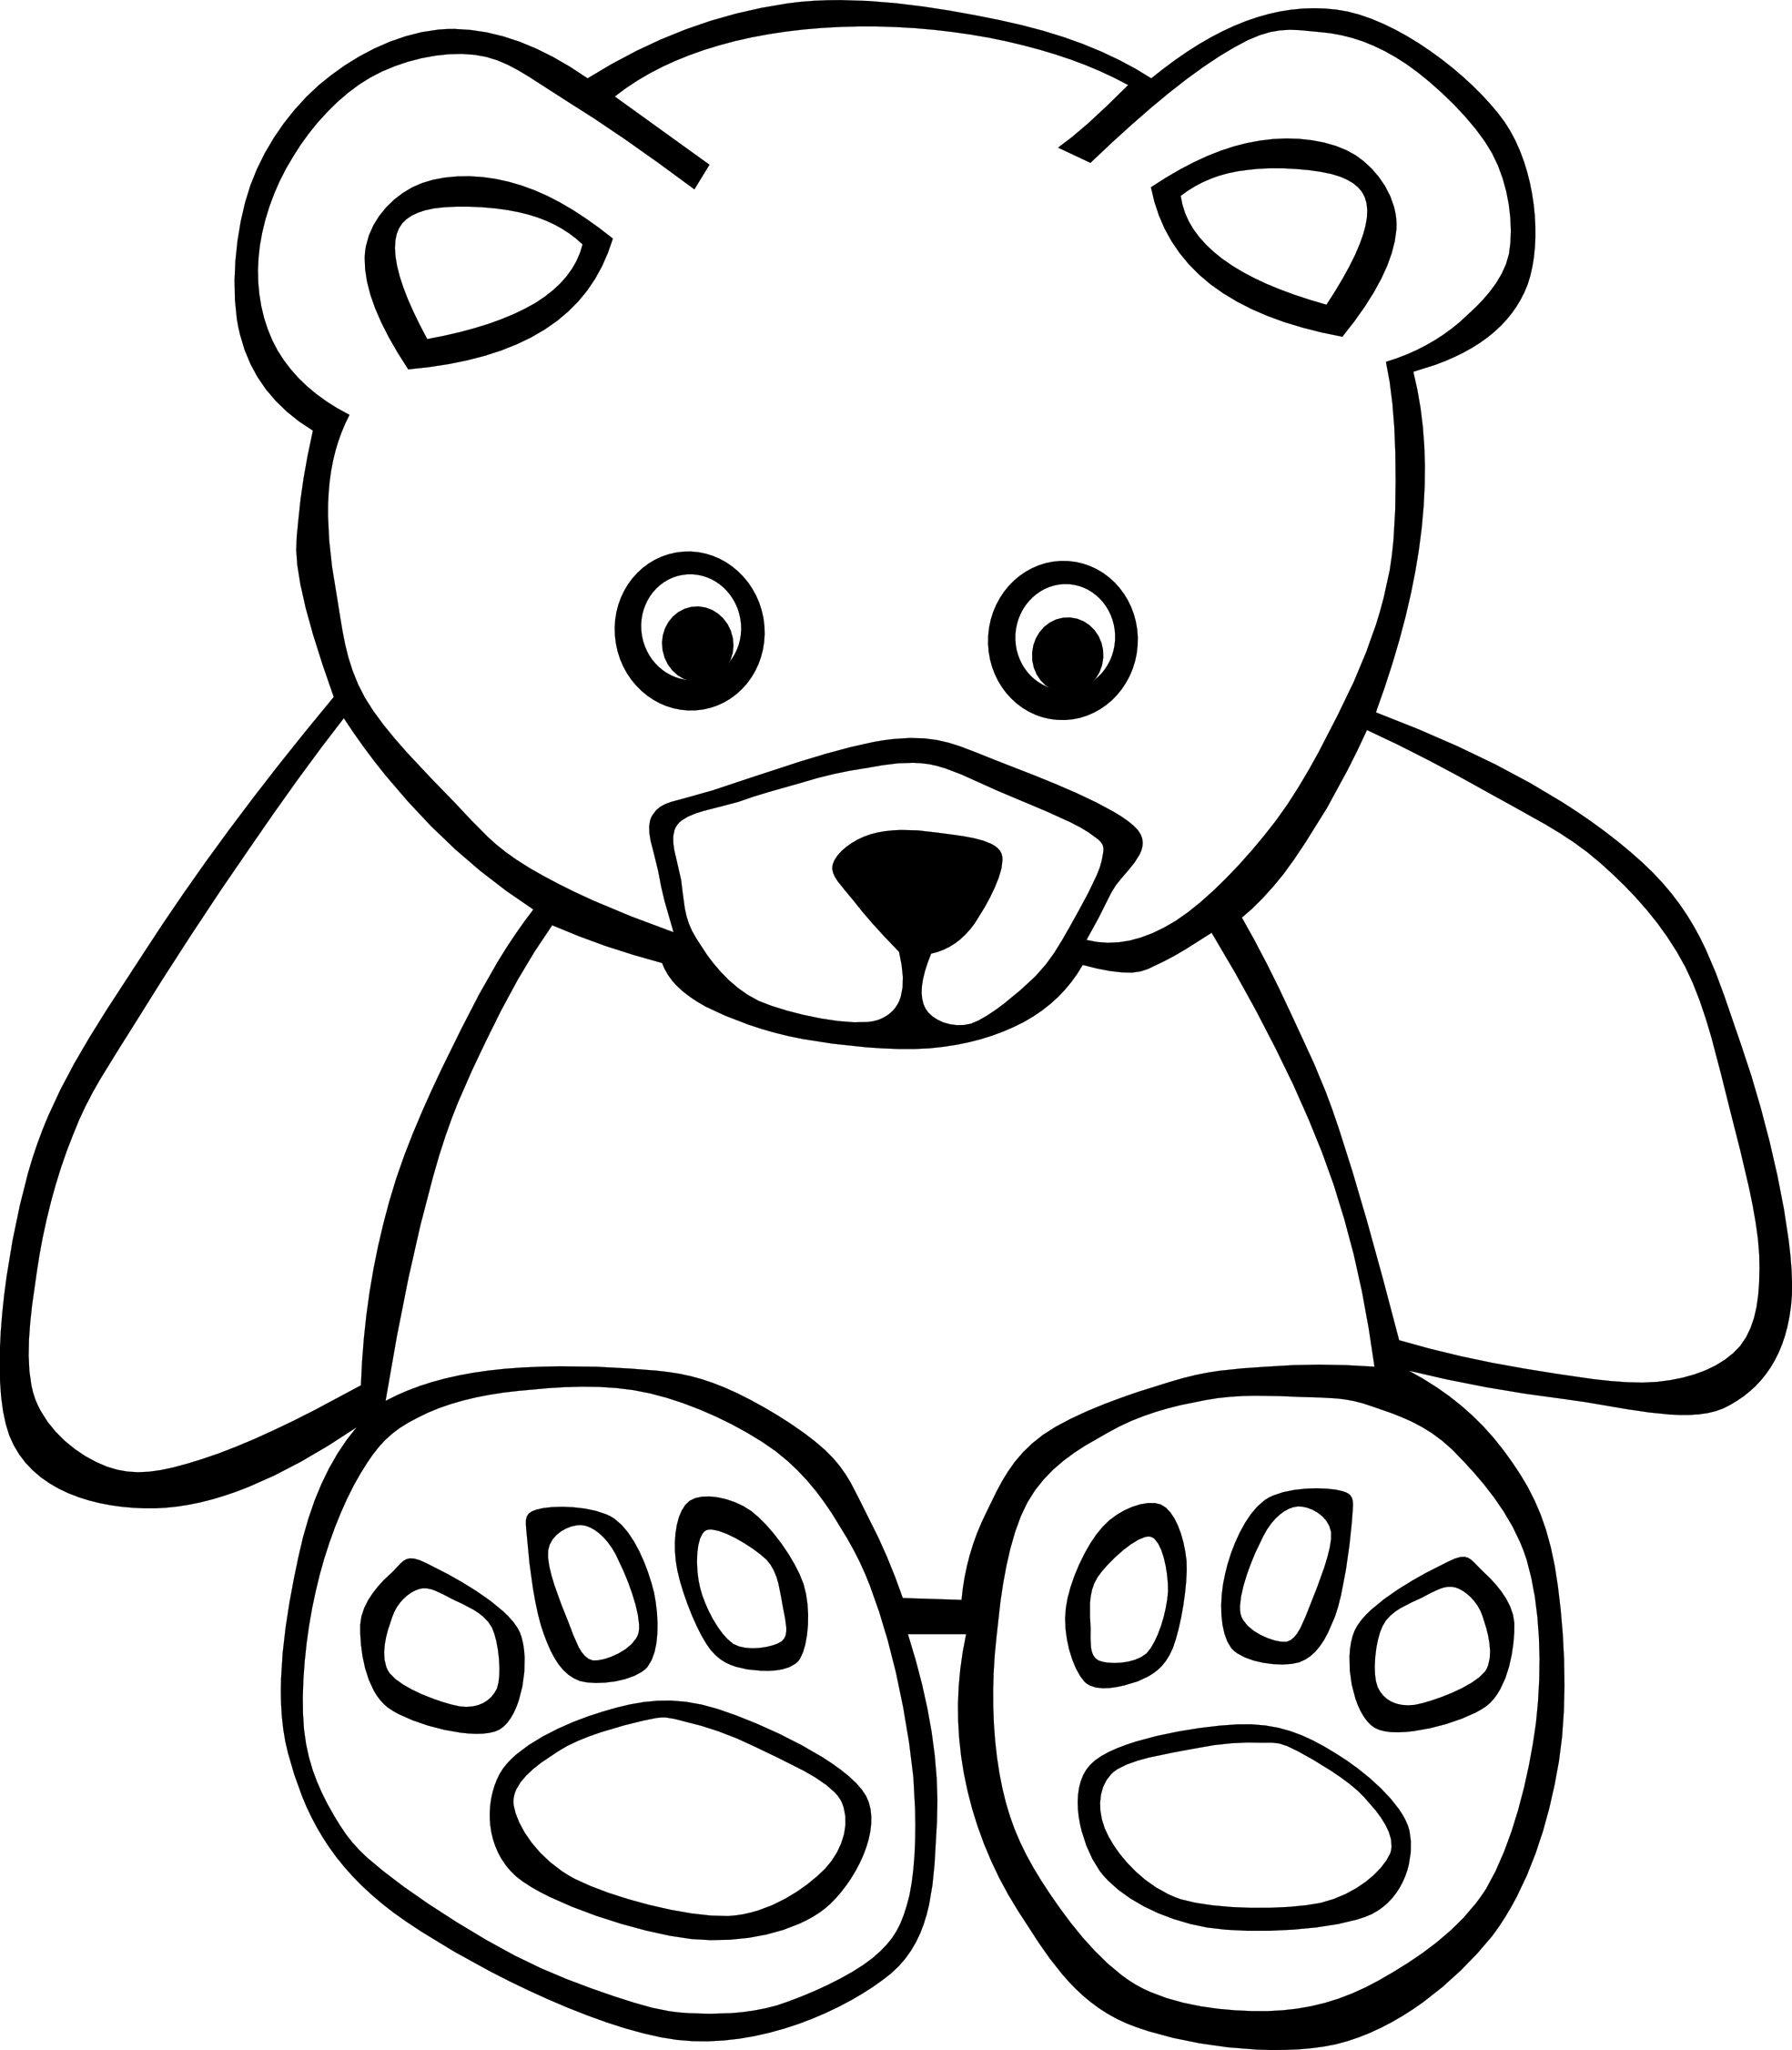 Halloween teddy bear clipart clip freeuse download 1271715 83 bear black white line art teddy bear ... - ClipArt Best ... clip freeuse download